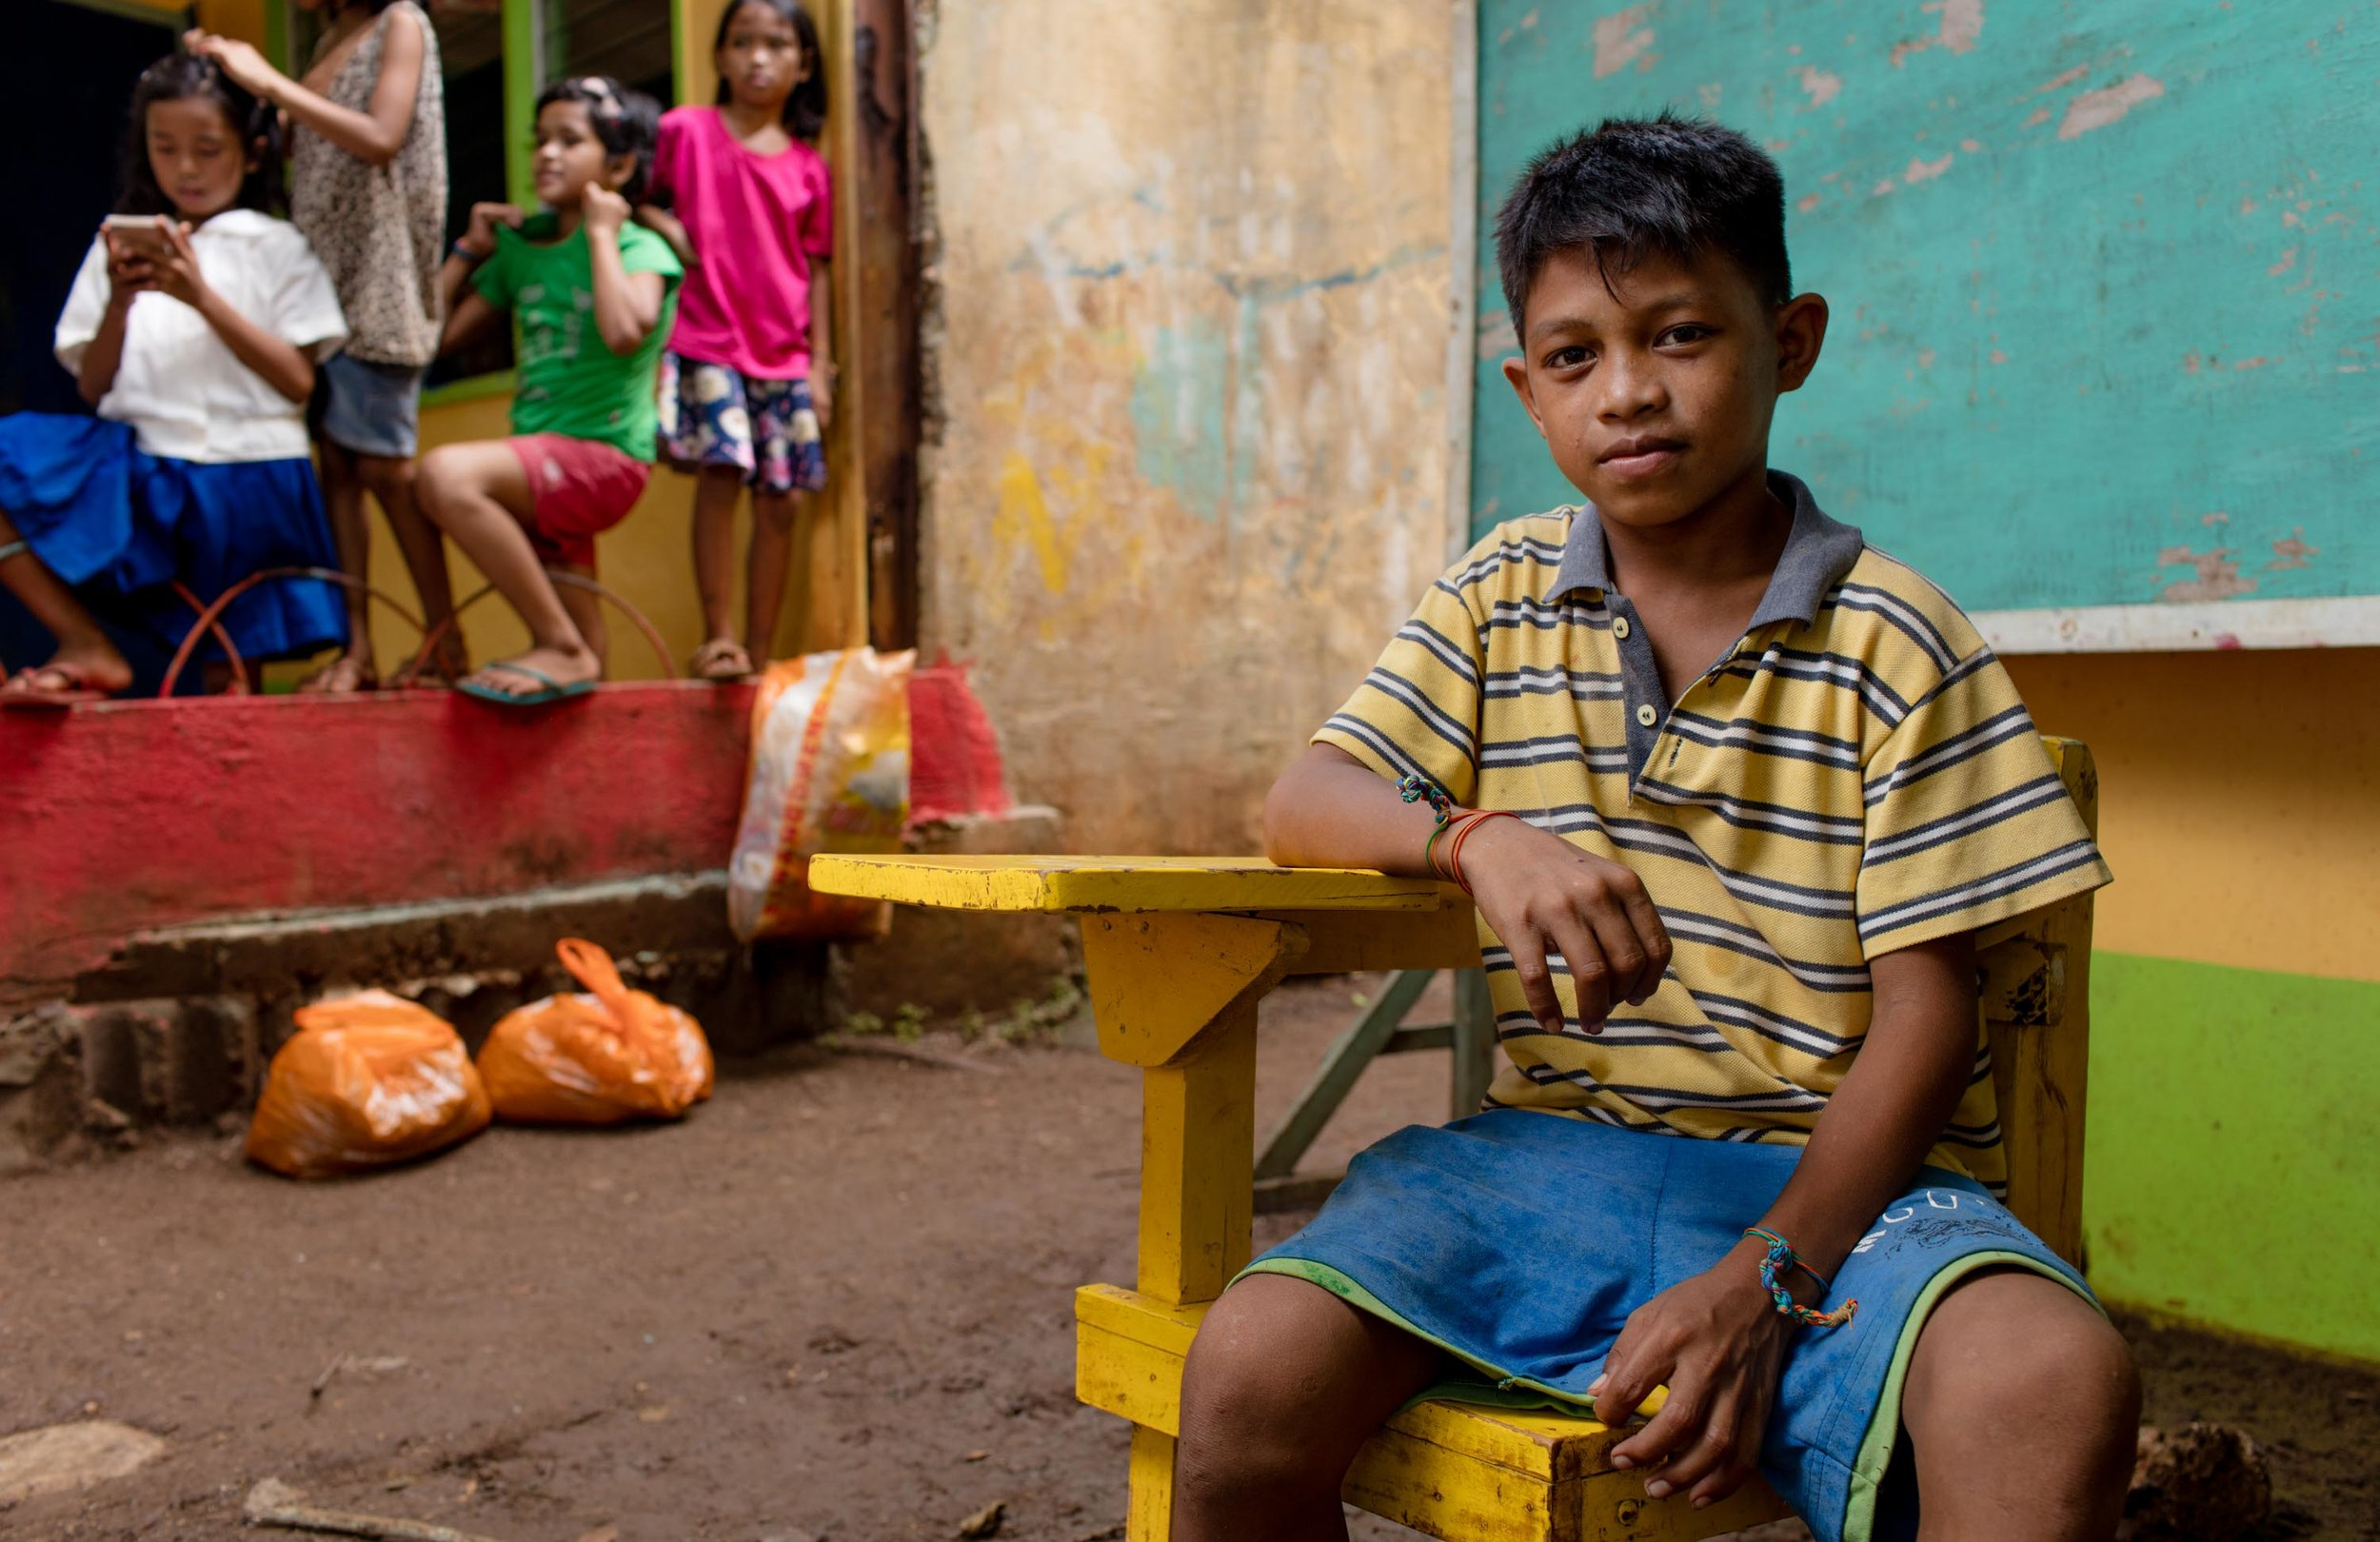 My name is Gabriel and I'm 12 years old. My Mother is a laundry woman and my father doesn't have any work. He makes money for food by gathering fire wood and selling it. It's a very long walk for me to get to school from my house. We don't have enough money for food at school so I don't eat when I'm there. If I have time away from studying, I go to the beach and beg for money so I can buy food for me and my brothers and sisters. There are 13 children in the family and two of my brothers have died from diseases already. Some of my brothers don't go to school because of bullying and they are always repeating their grades. My dream in life is to get a job so I can help my family.